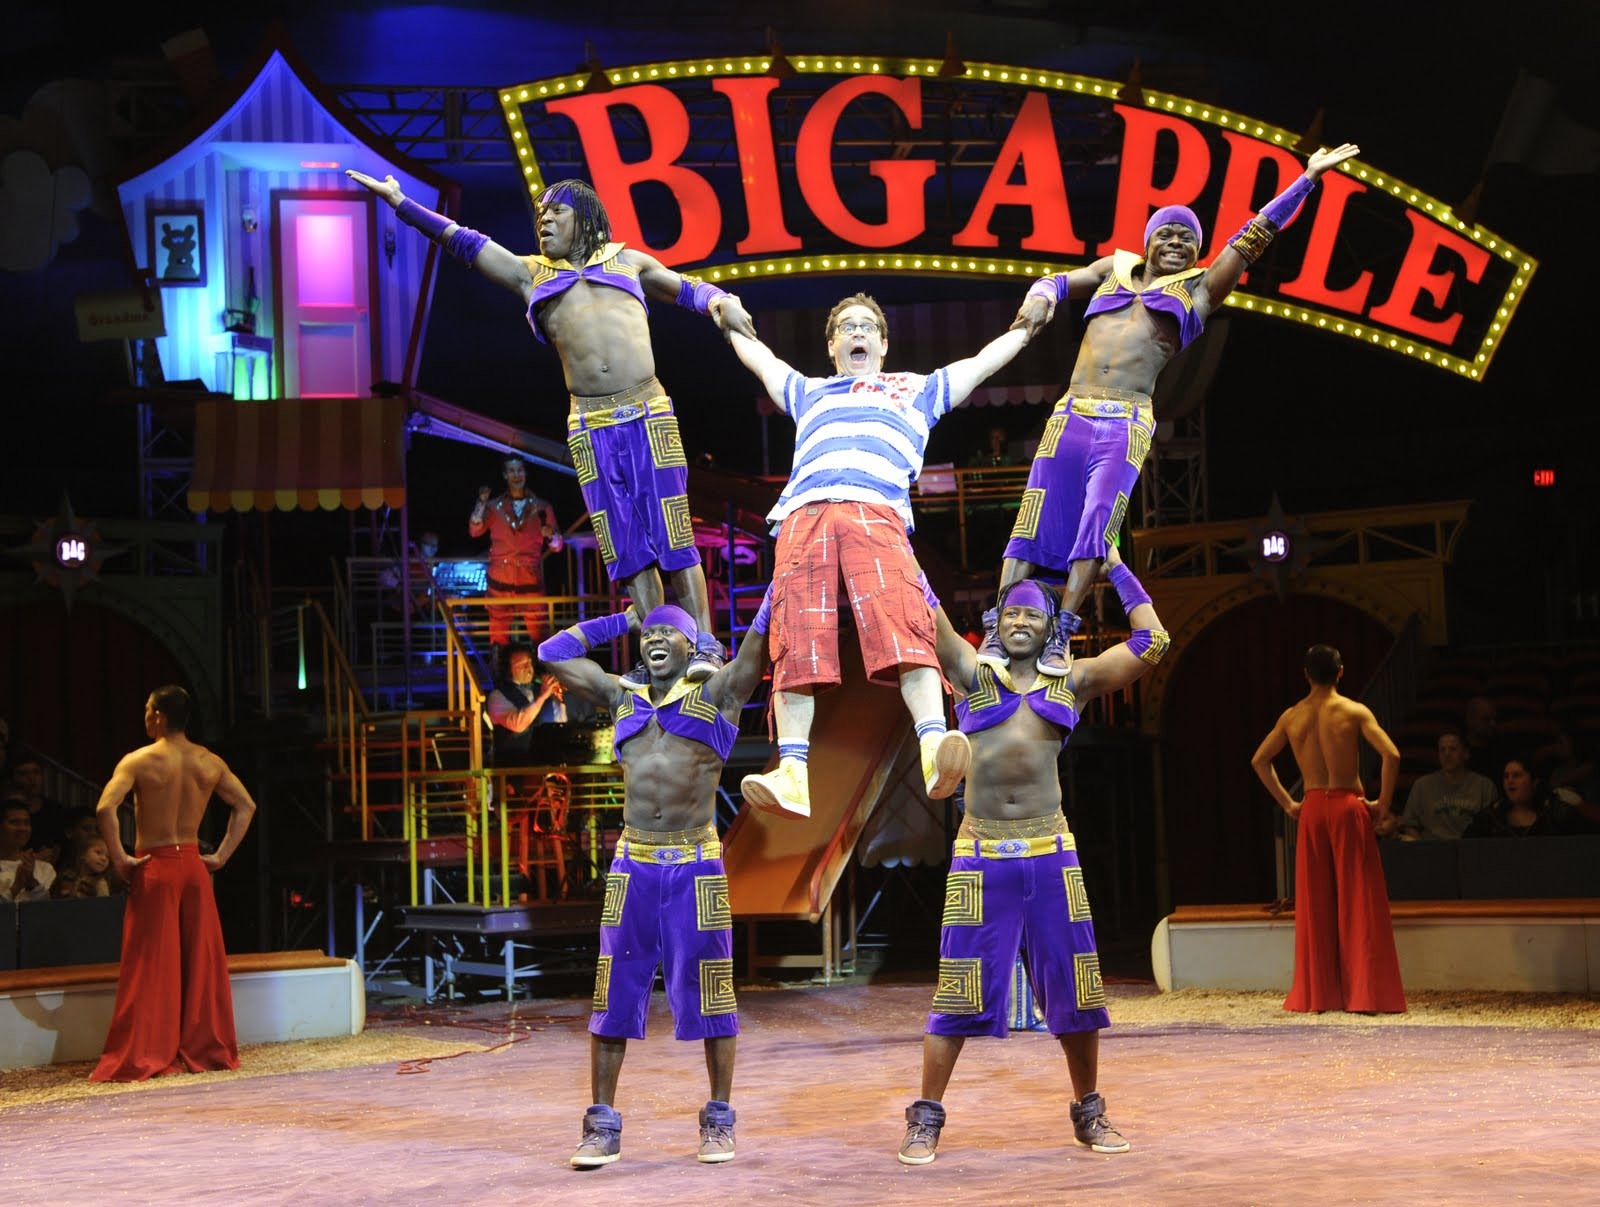 Get discount Big Apple Circus tickets for Big Apple Circus at Assembly Row Boston. Goldstar has Big Apple Circus reviews, seat locations, and deals on tickets. Big Apple Circus Boston Tickets - n/a at Big Apple Circus at Assembly Row. /5(76).